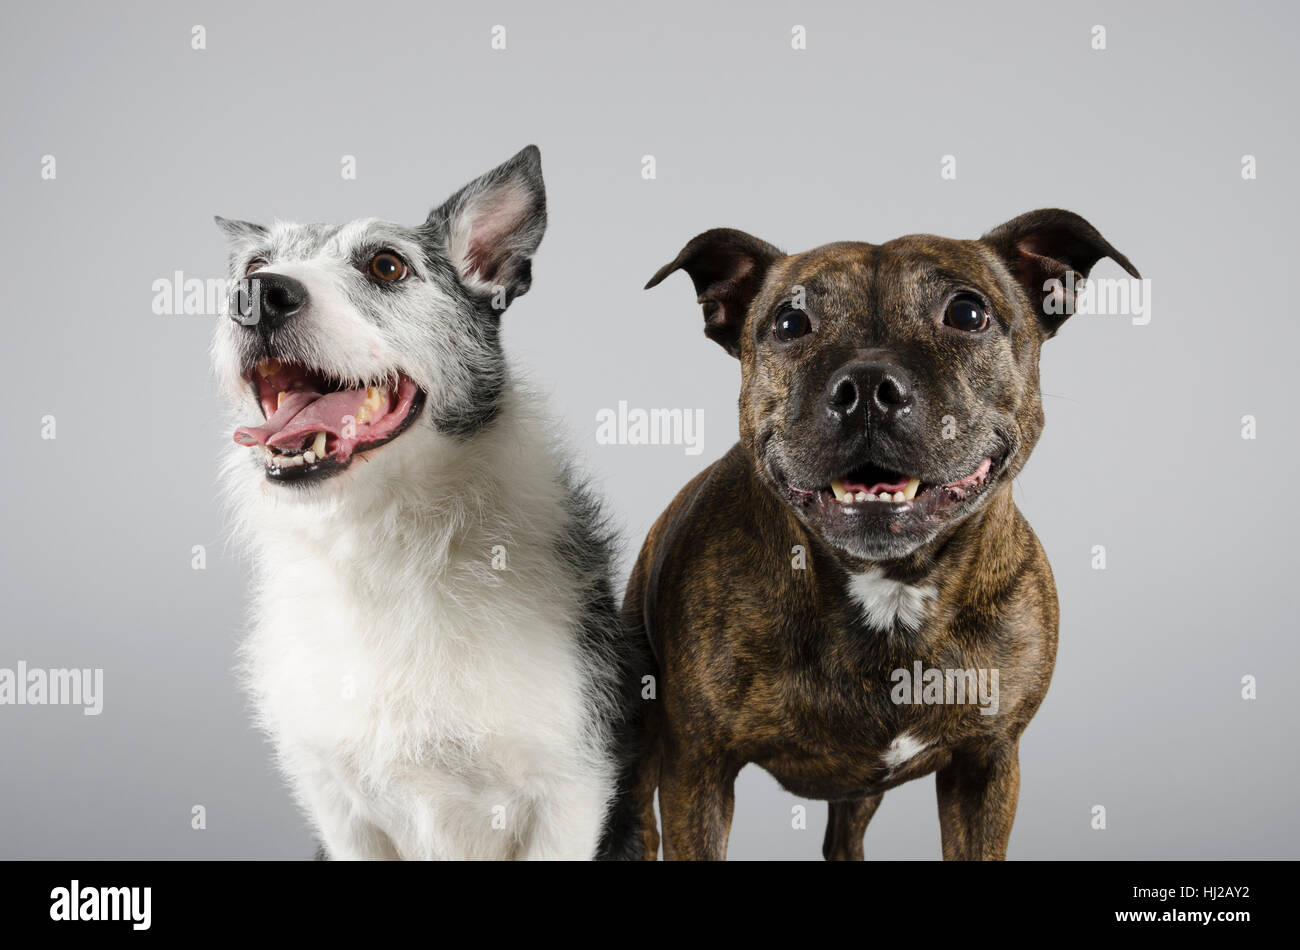 Doggy Pals - staffie and jack russell cross - Stock Image